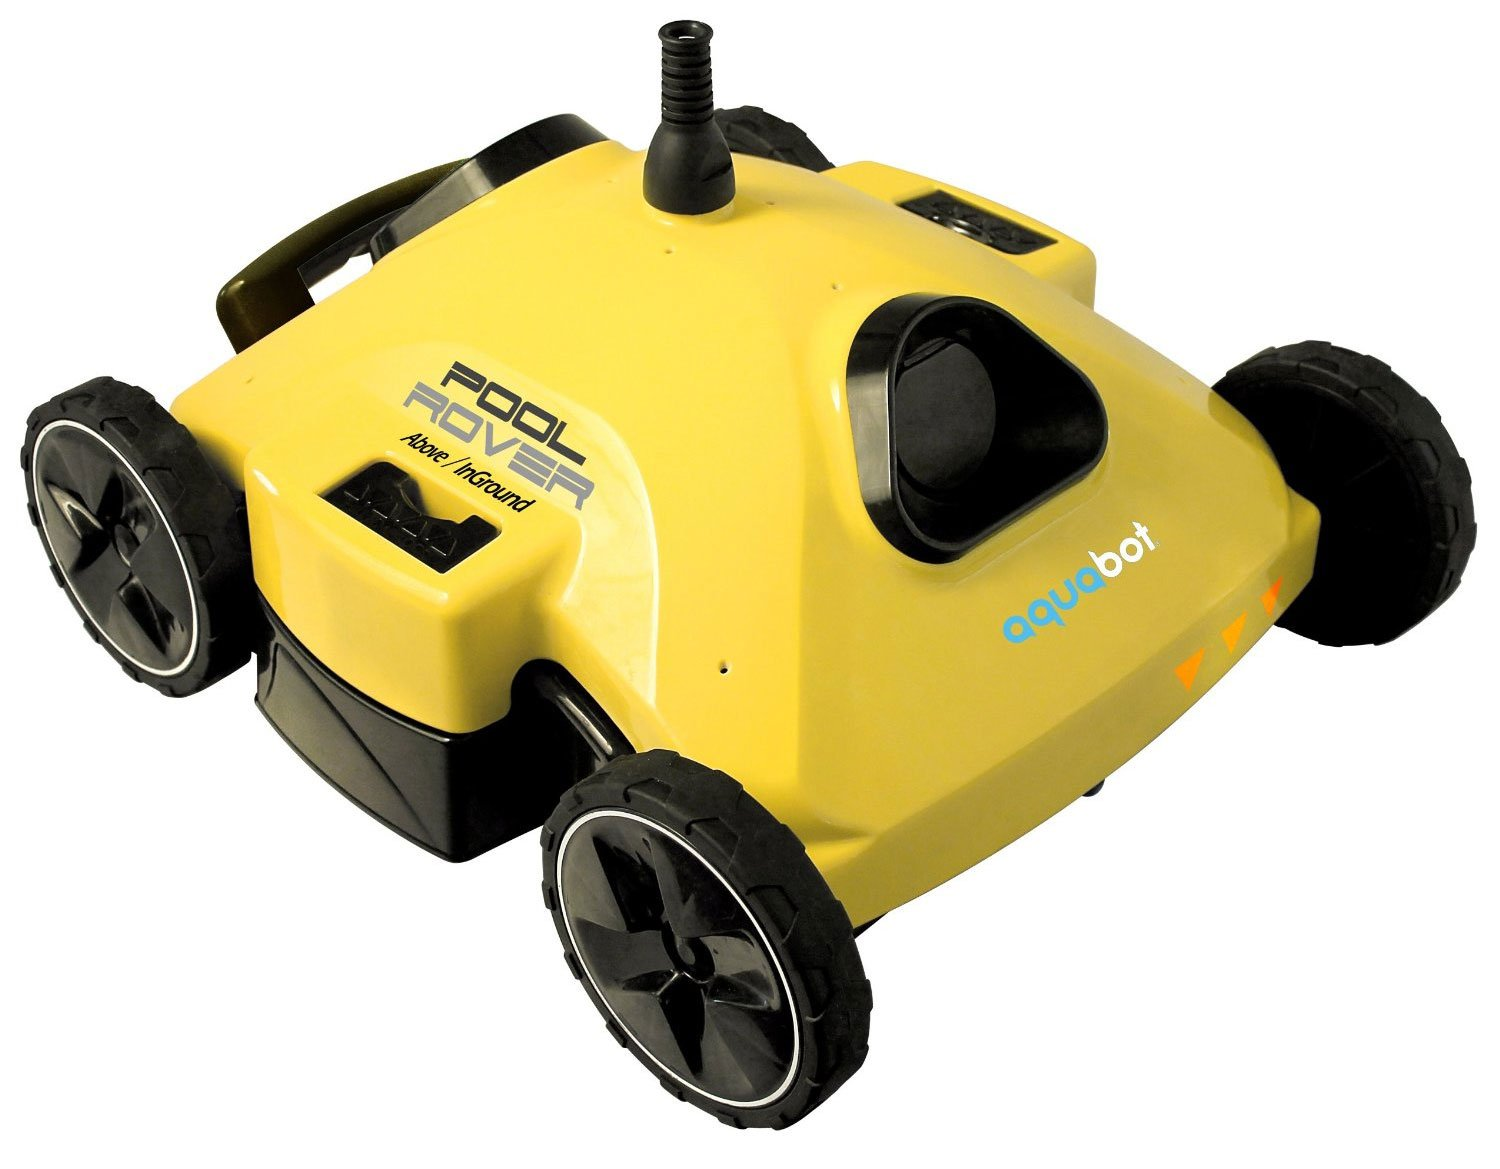 Aquabot AJET122 Pool Rover S2-50 Robotic Pool Cleaner for Above-Ground and Small In-Ground Pools by Aquabot